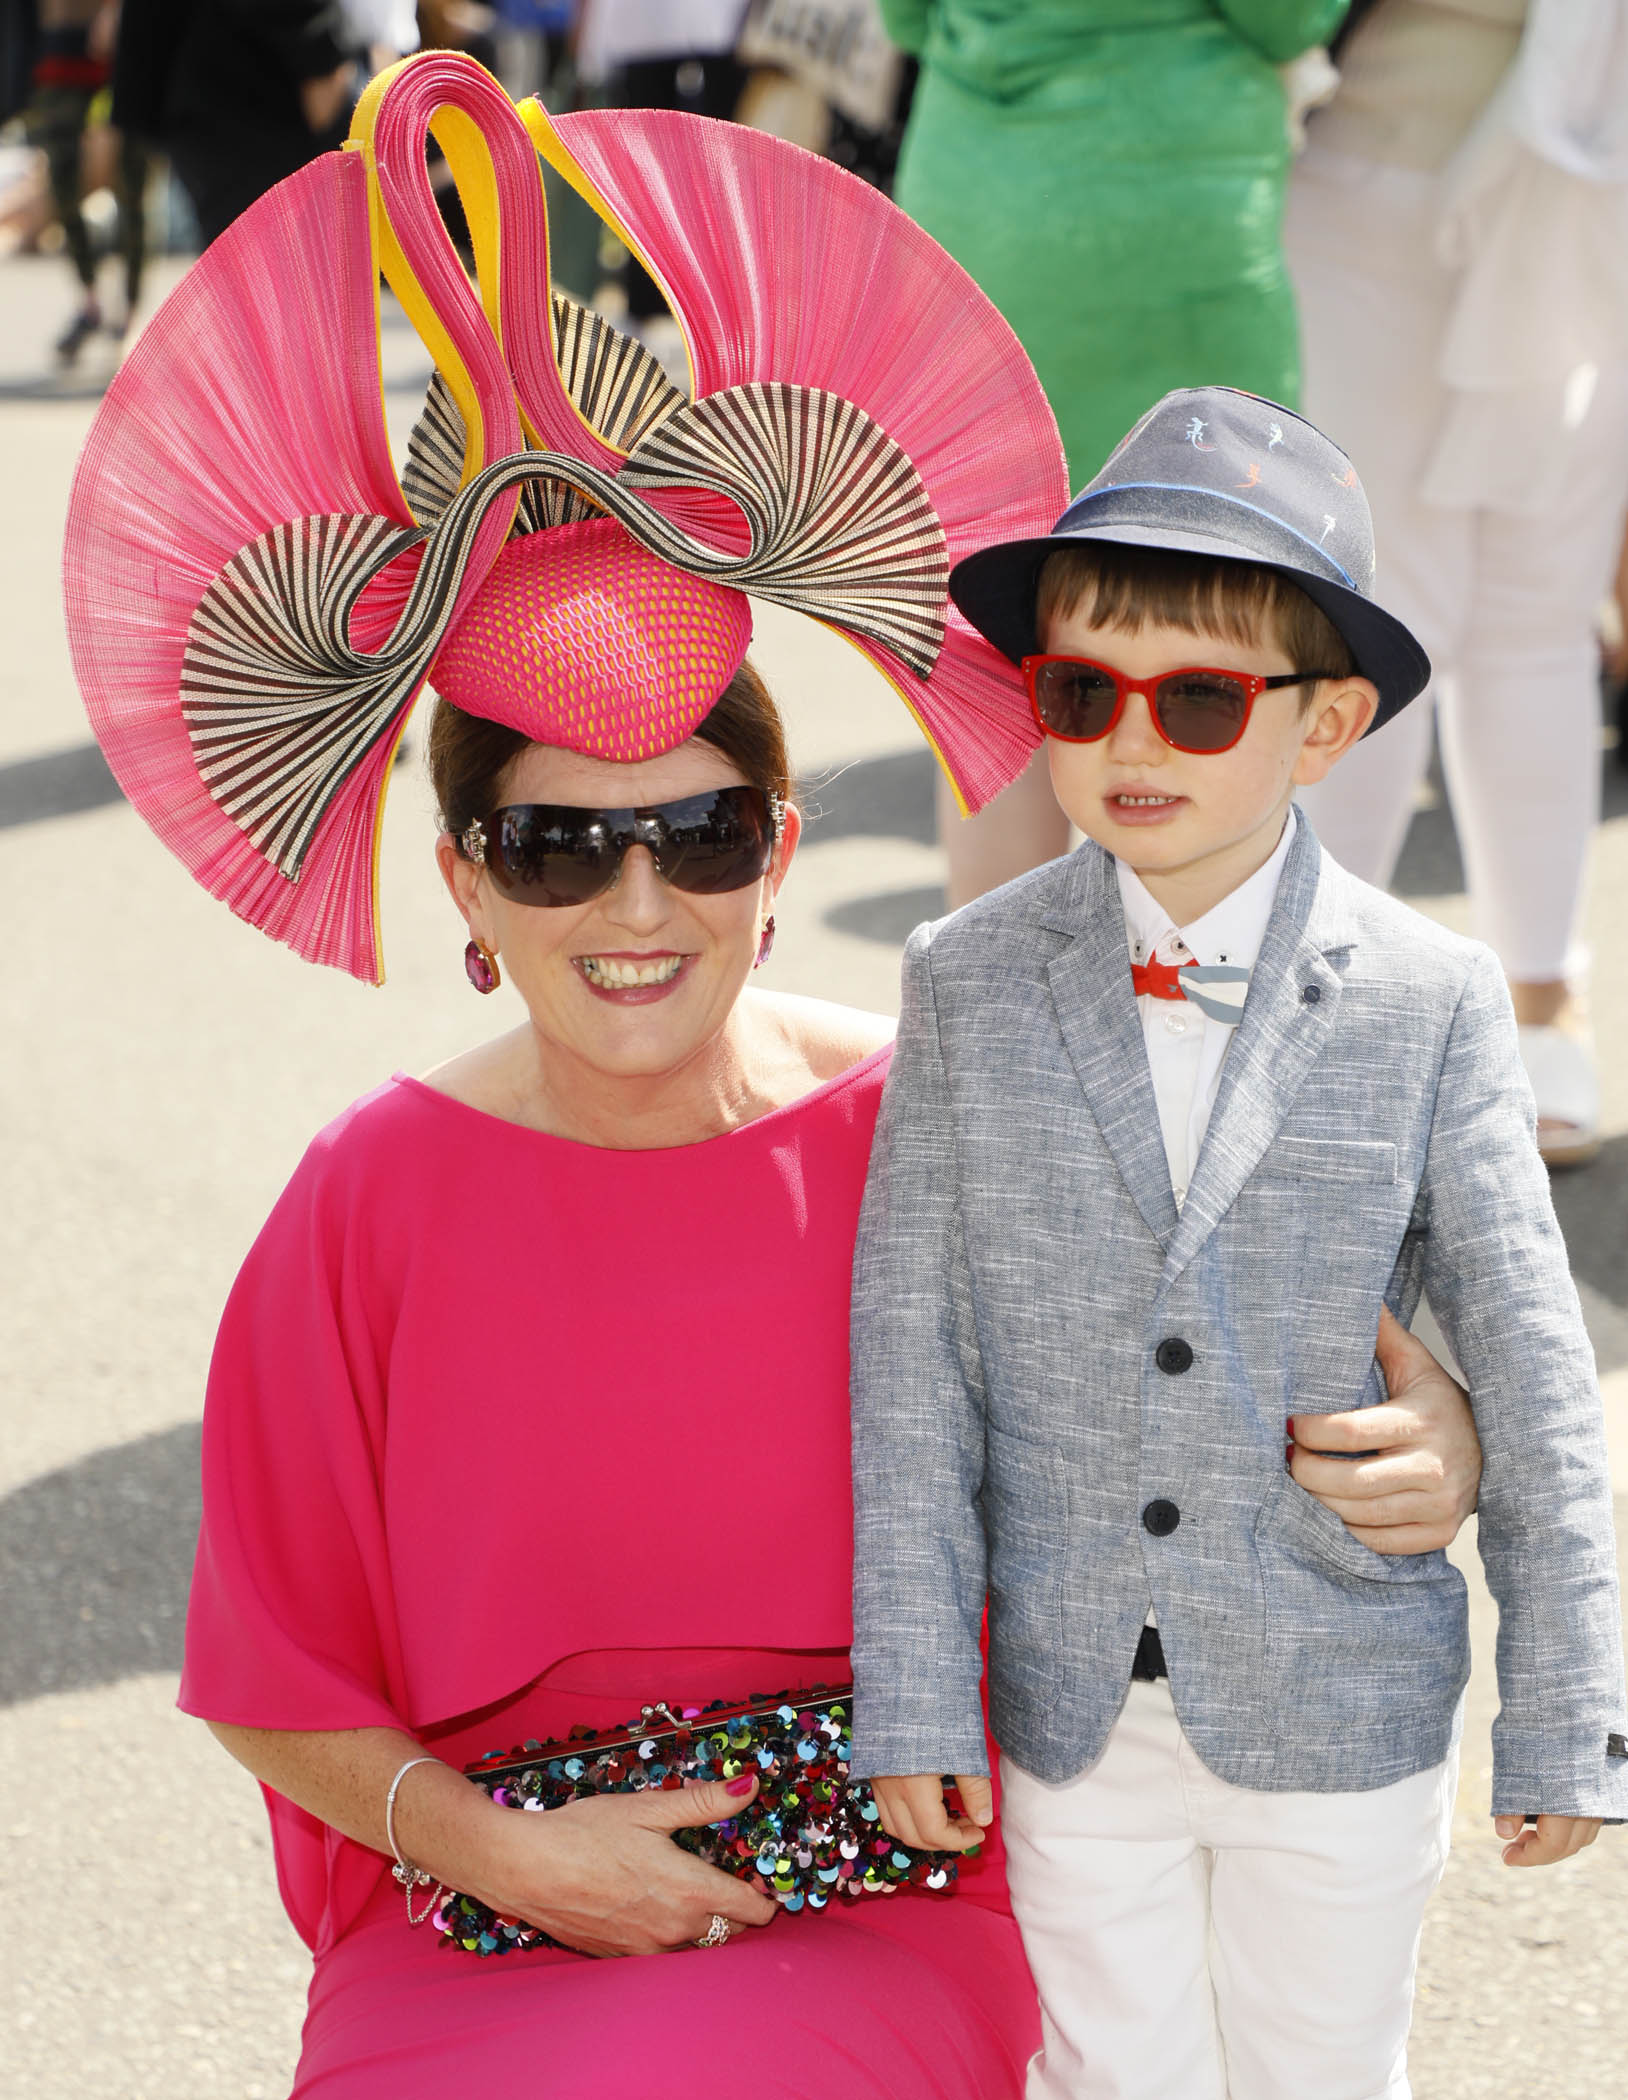 Kathleen Henry with her son James Wall at the Dundrum Town Centre Ladies' Day at the Dublin Horse Show in the RDS. Photo: Kieran Harnett